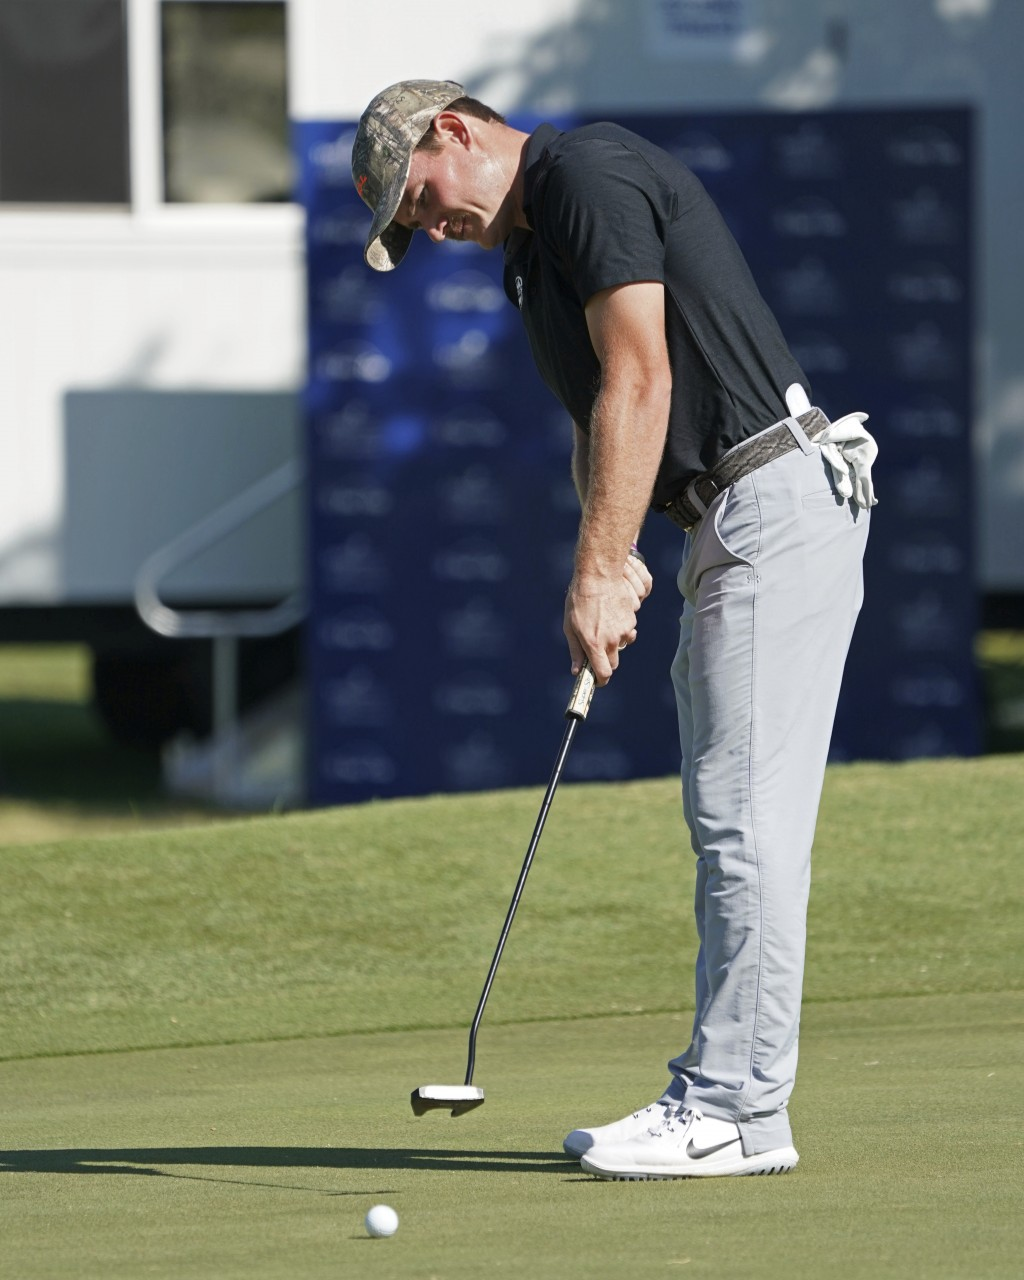 John Peterson putts on the ninth green during the second round of the Sony Open golf tournament, Friday, Jan. 12, 2018, in Honolulu. (AP Photo/Marco G